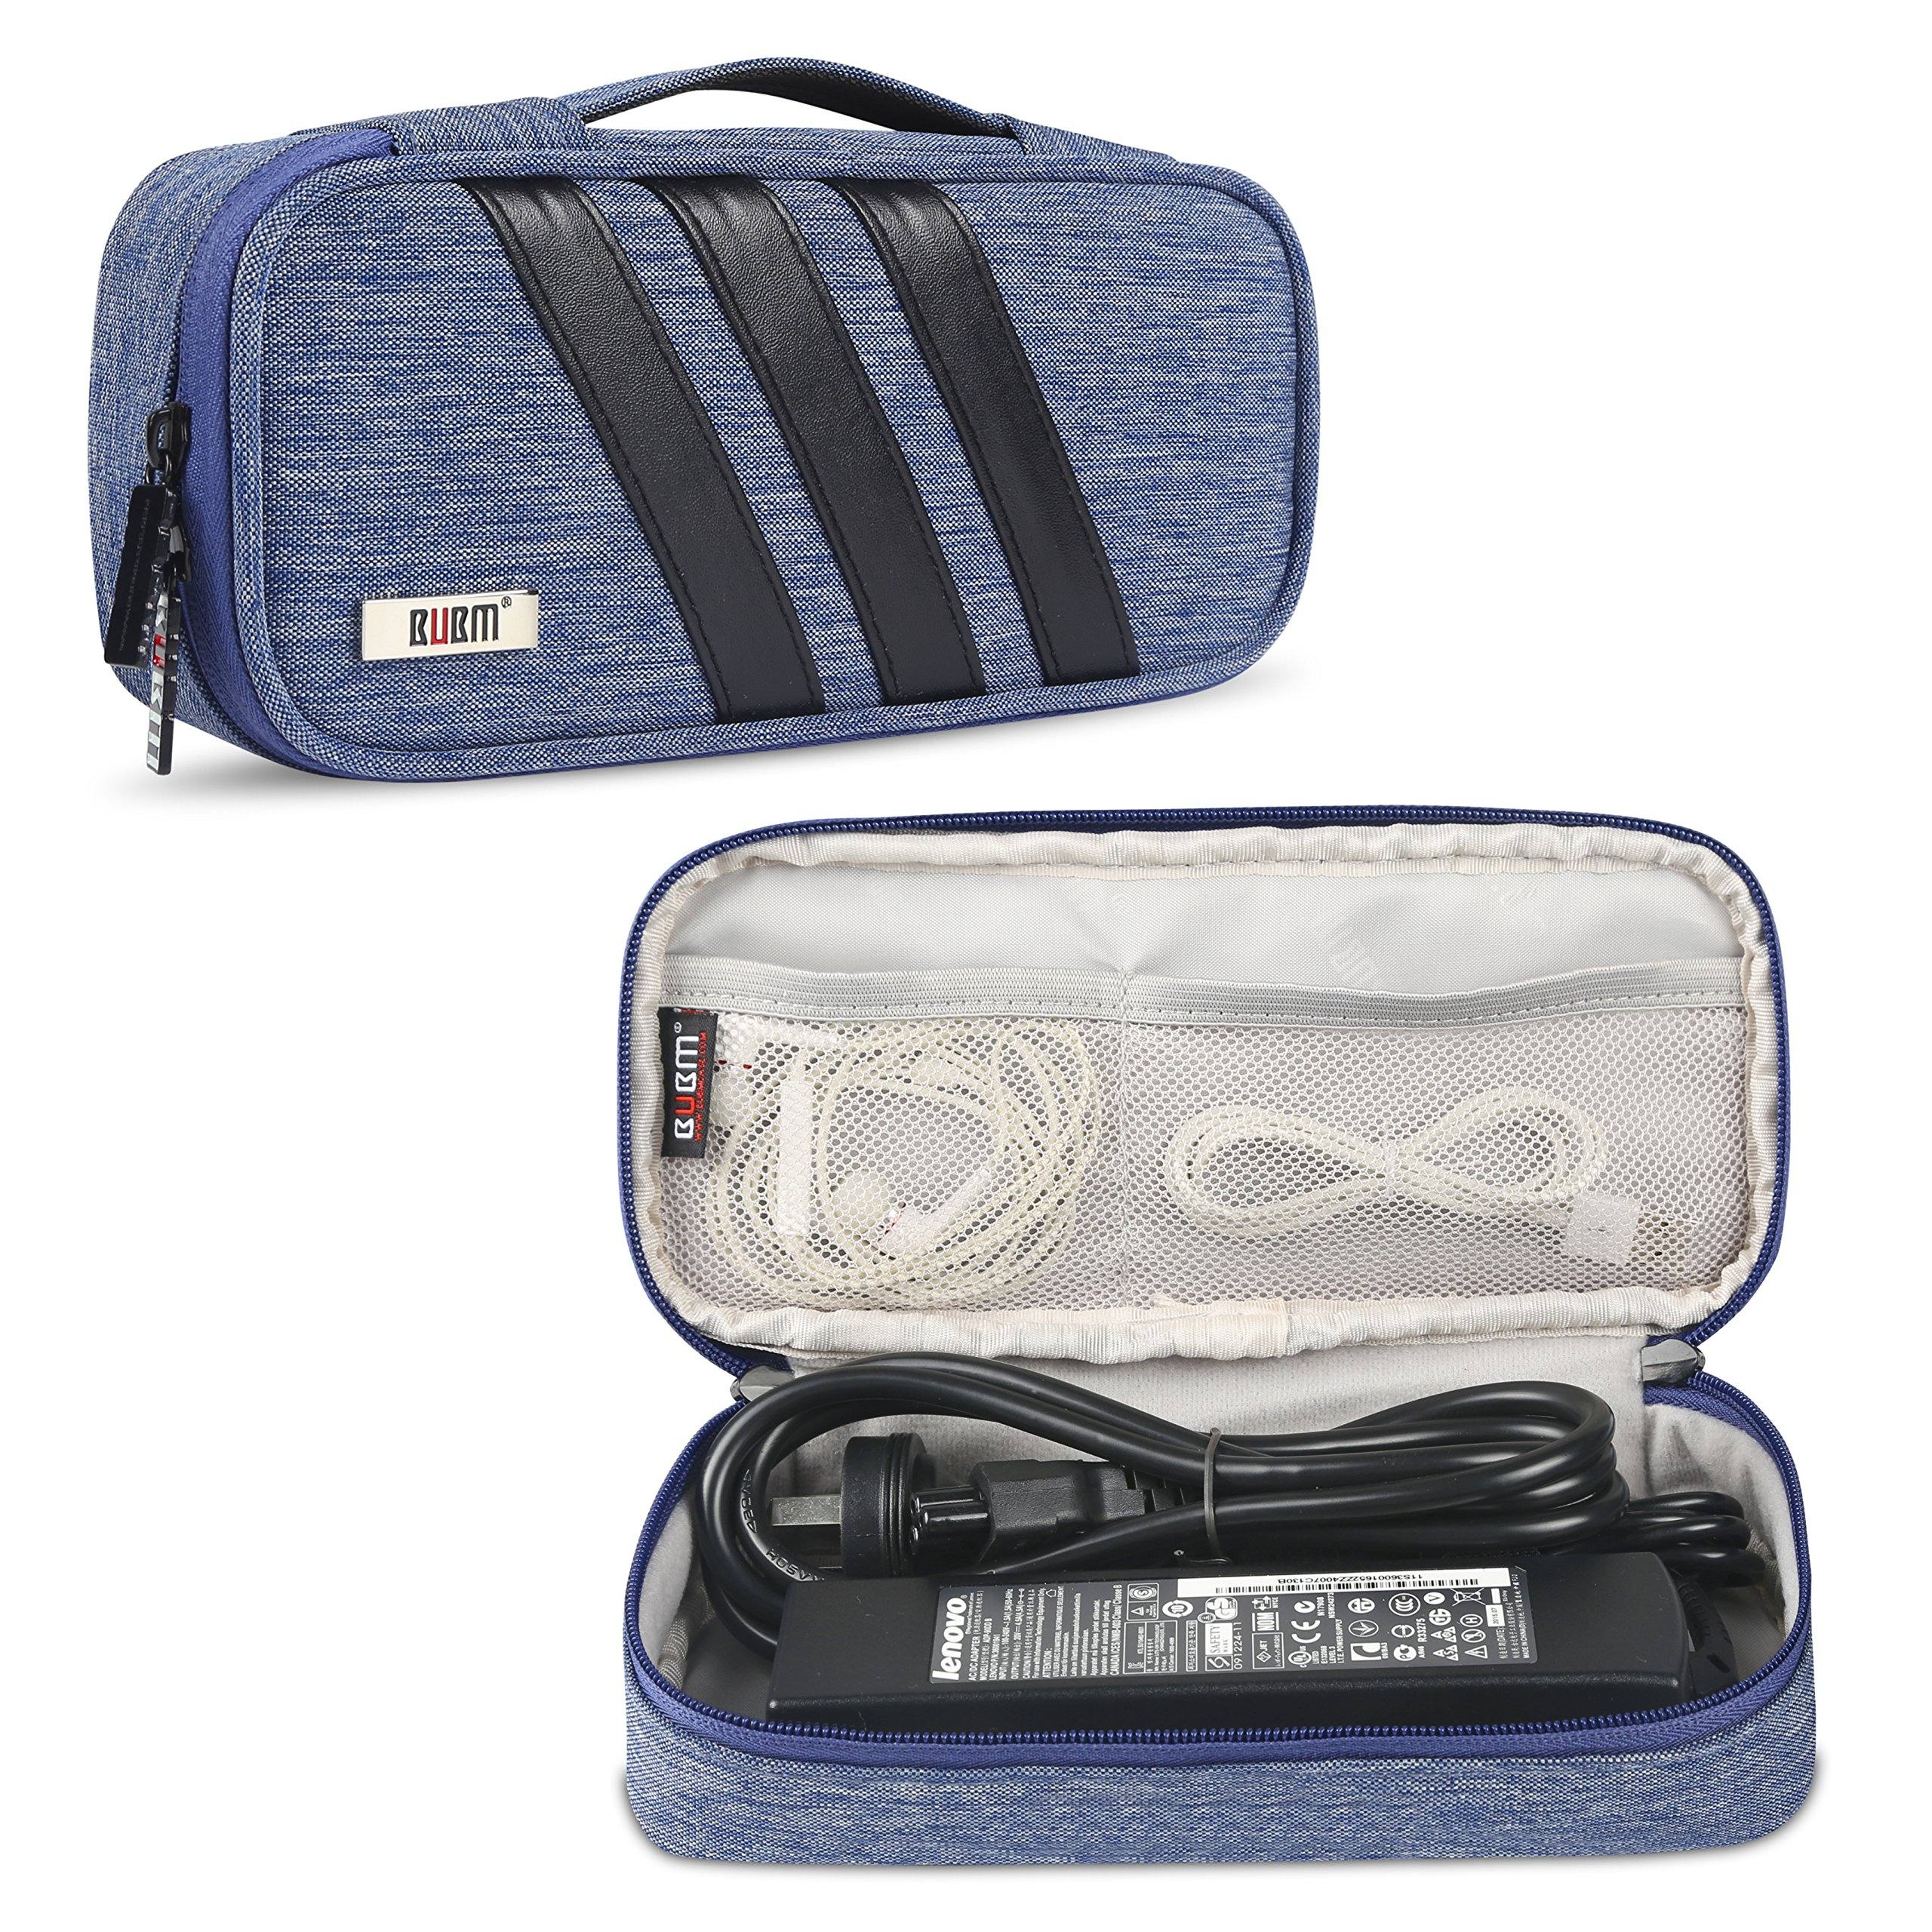 BUBM Carrying Bag for AC Adapter, Travel Organizer for Laptop Charger, Pouch Cover Case for Power Cord and Other Accessories, Blue